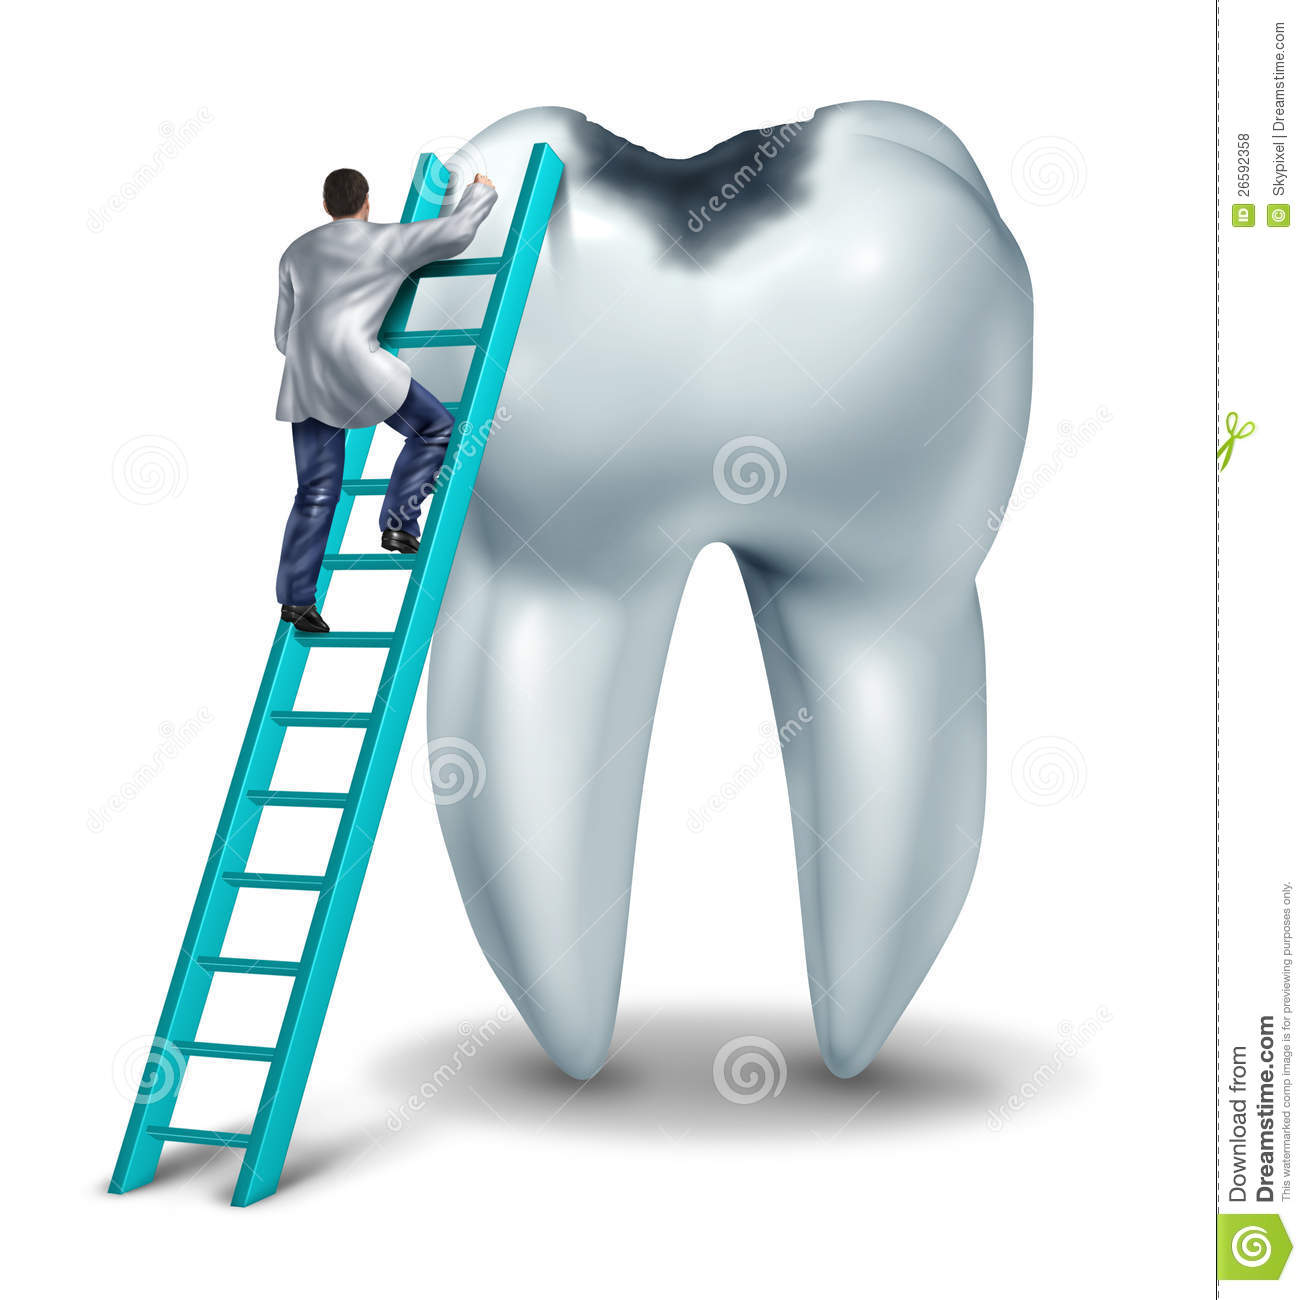 Dental Care Health And Medical Symbol With A Dentist Or Doctor In